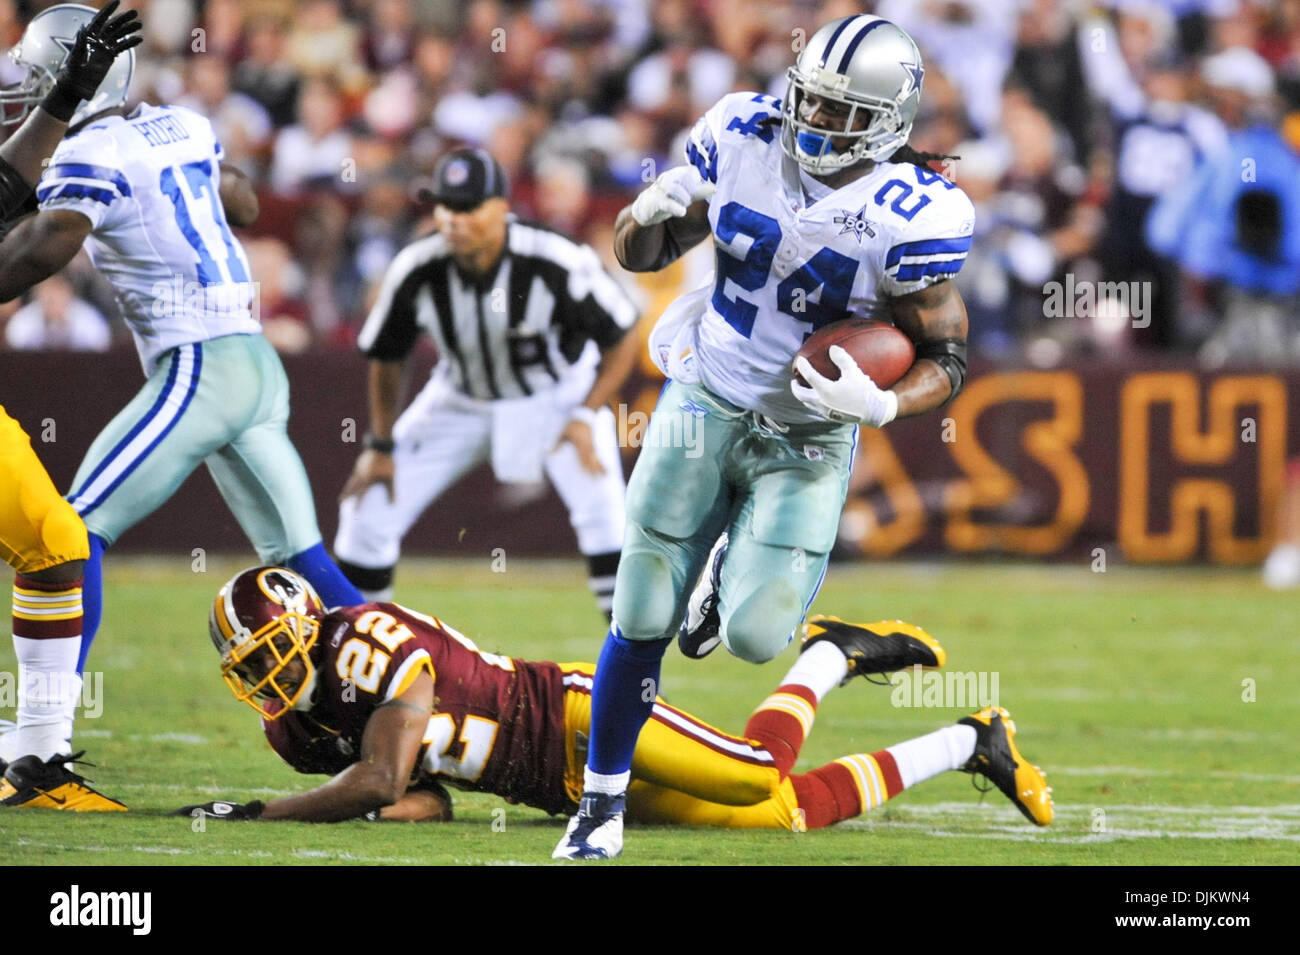 bf147c6224e Nfl Referee Stock Photos & Nfl Referee Stock Images - Page 3 - Alamy